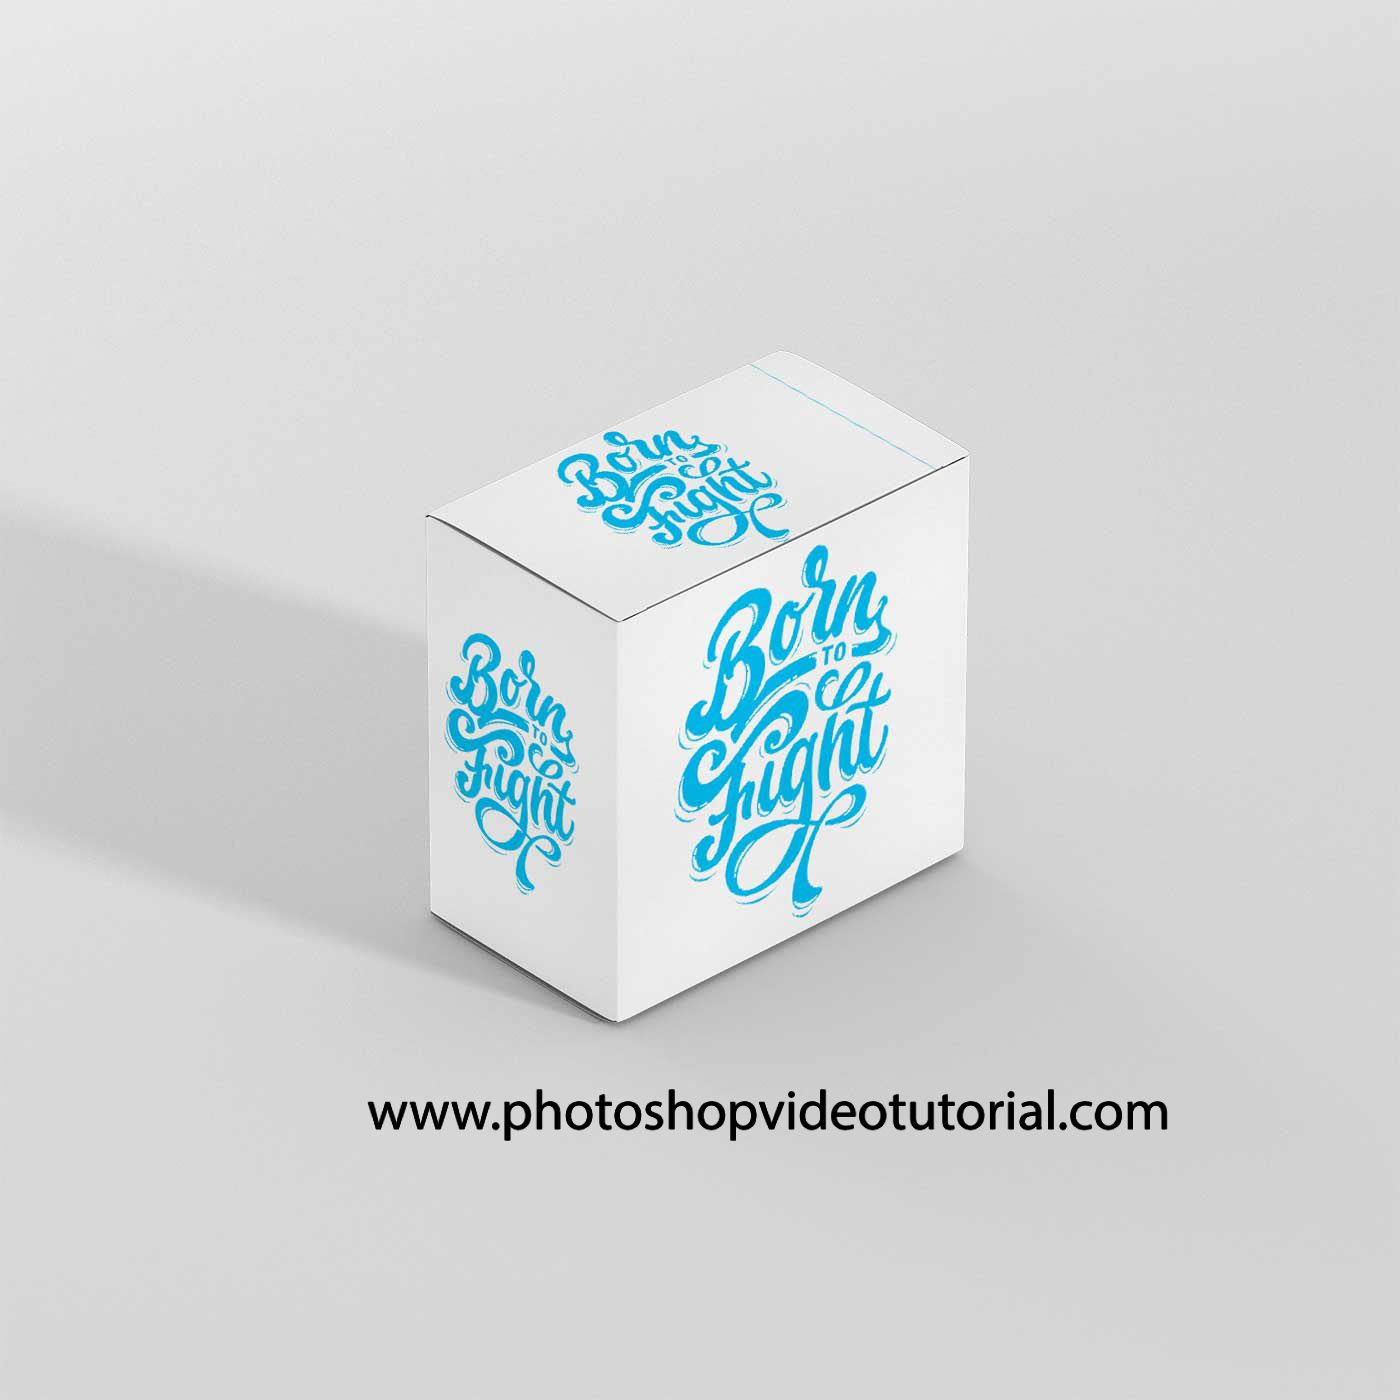 2790+ Box Mockup Psd Free Download Easy to Edit